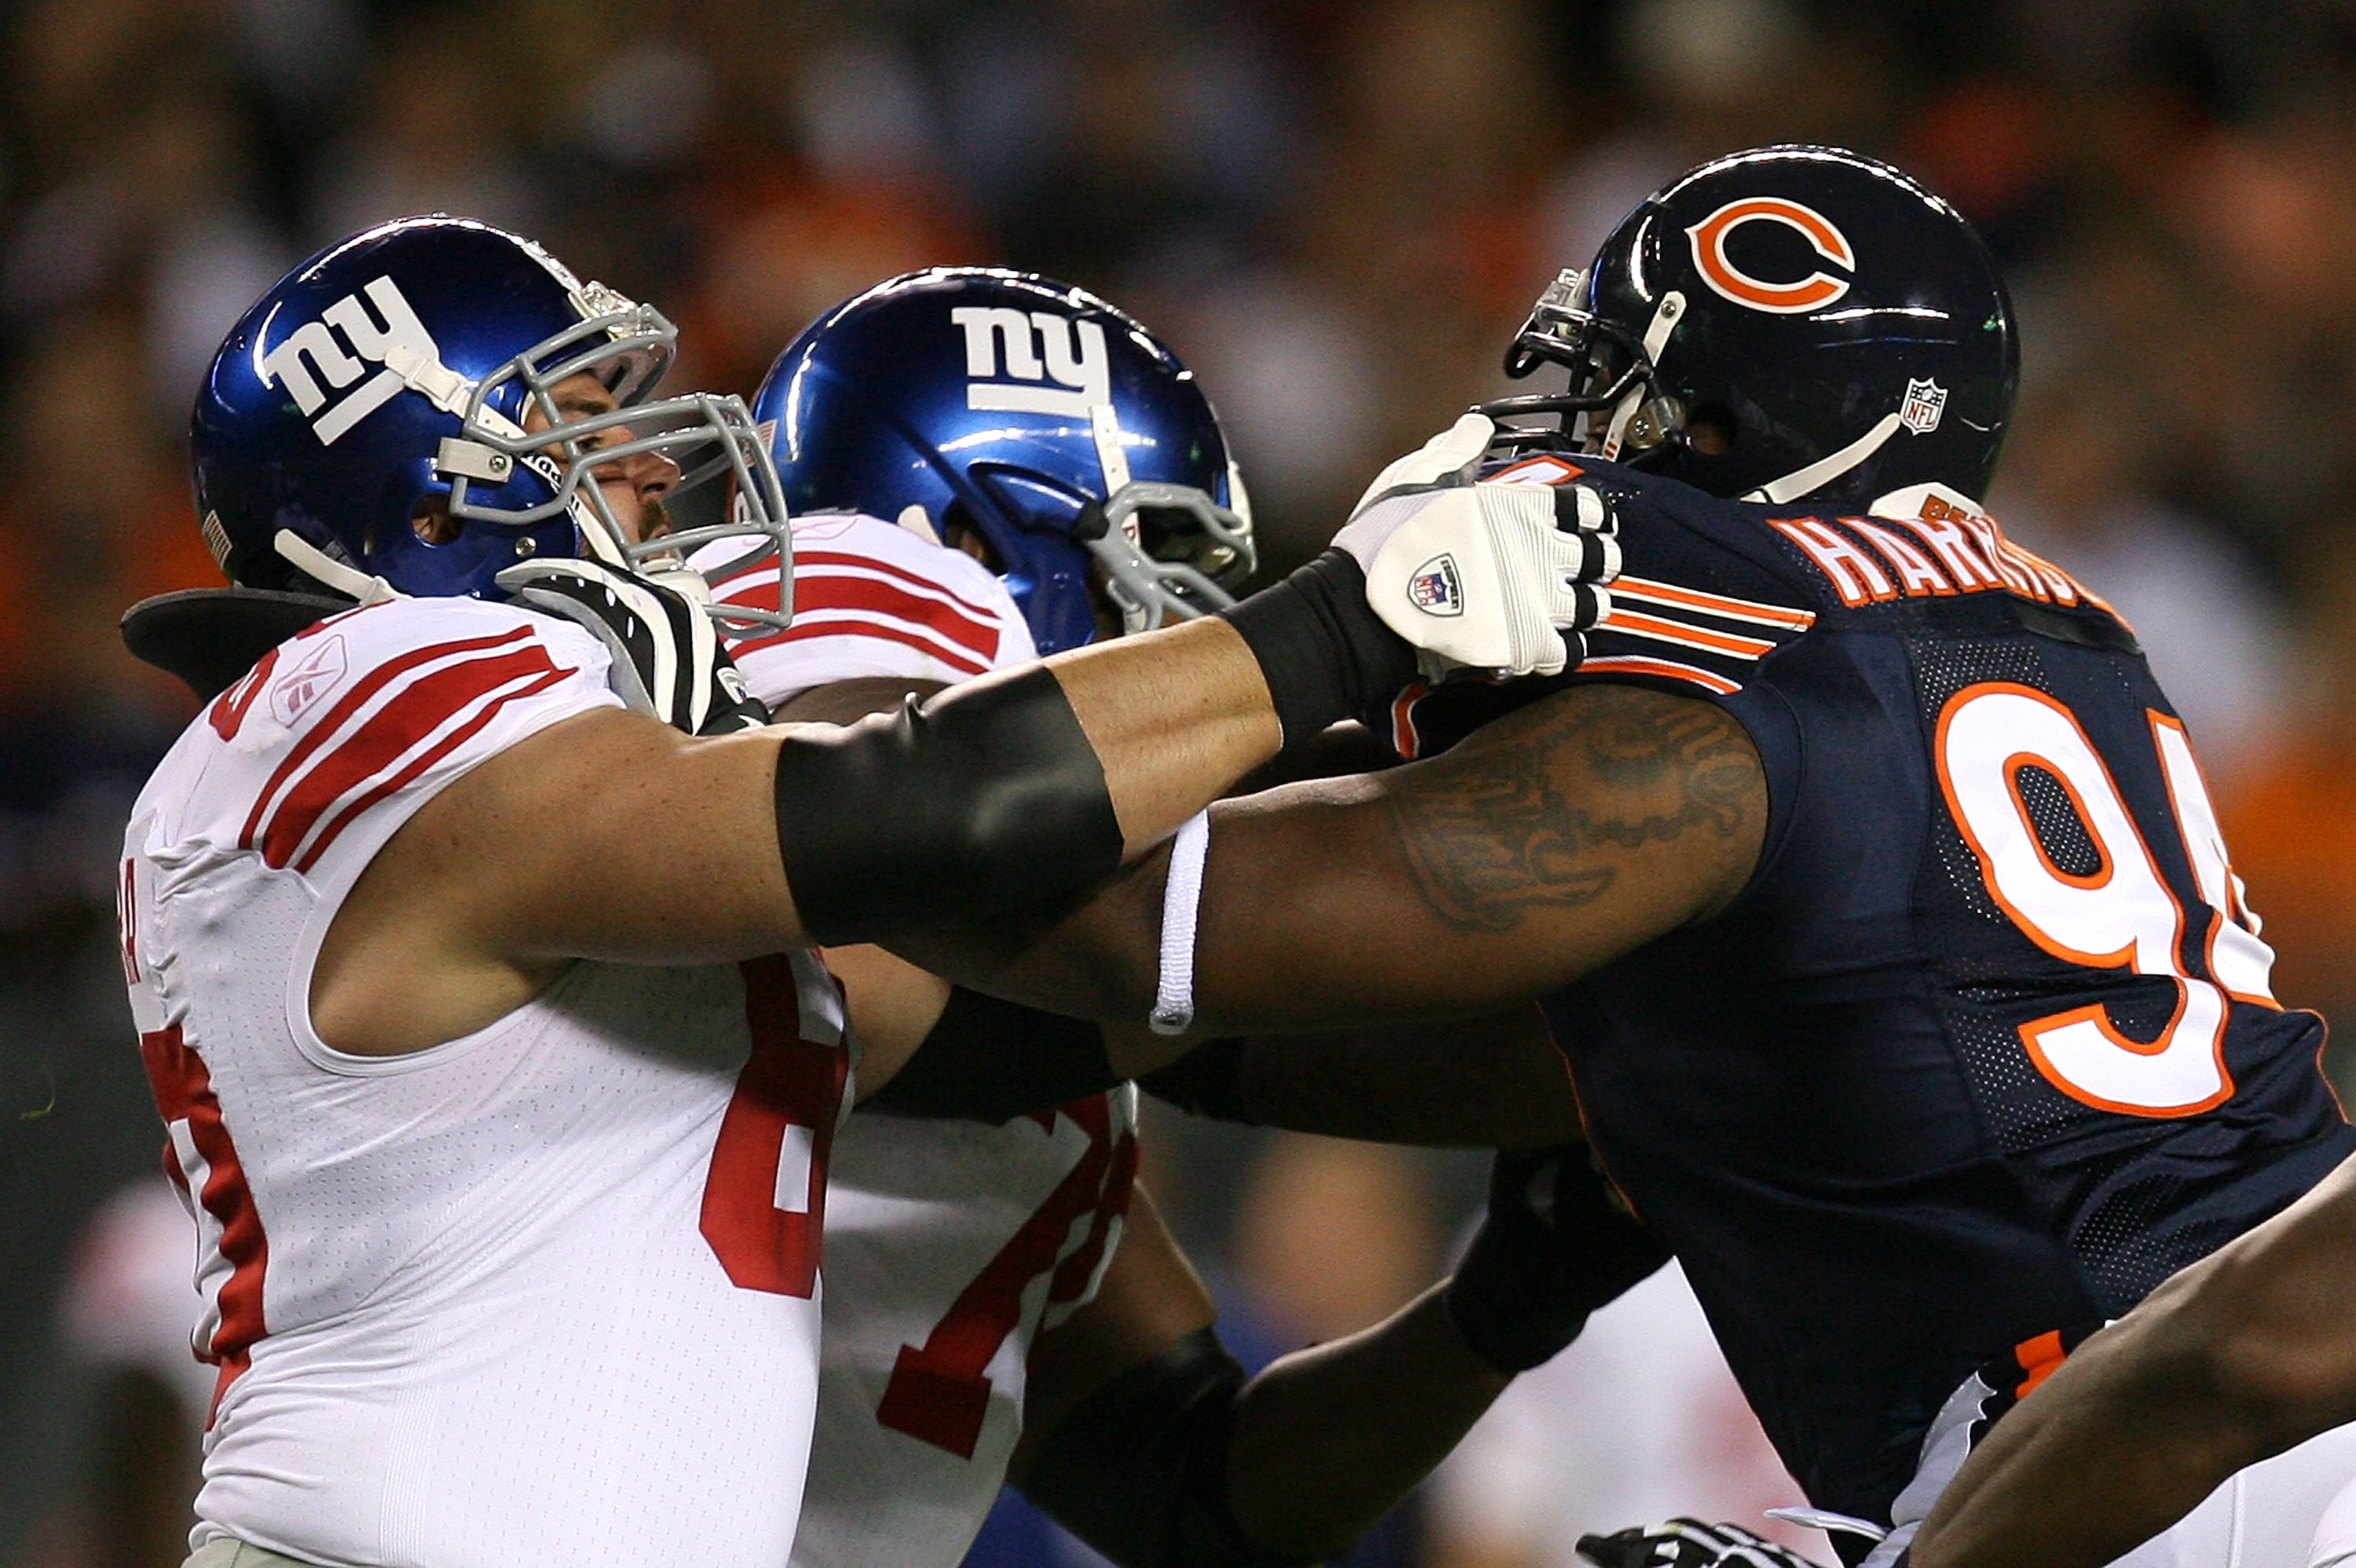 CHICAGO - AUGUST 22: Shaun O'Hara #60 of the New York Giants blocks Marcus Harrison #94 of the Chicago Bears during a pre-season game on August 22, 2009 at Soldier Field in Chicago, Illinois. The Bears defeated the Giants 17-3. (Photo by Jonathan Daniel/G